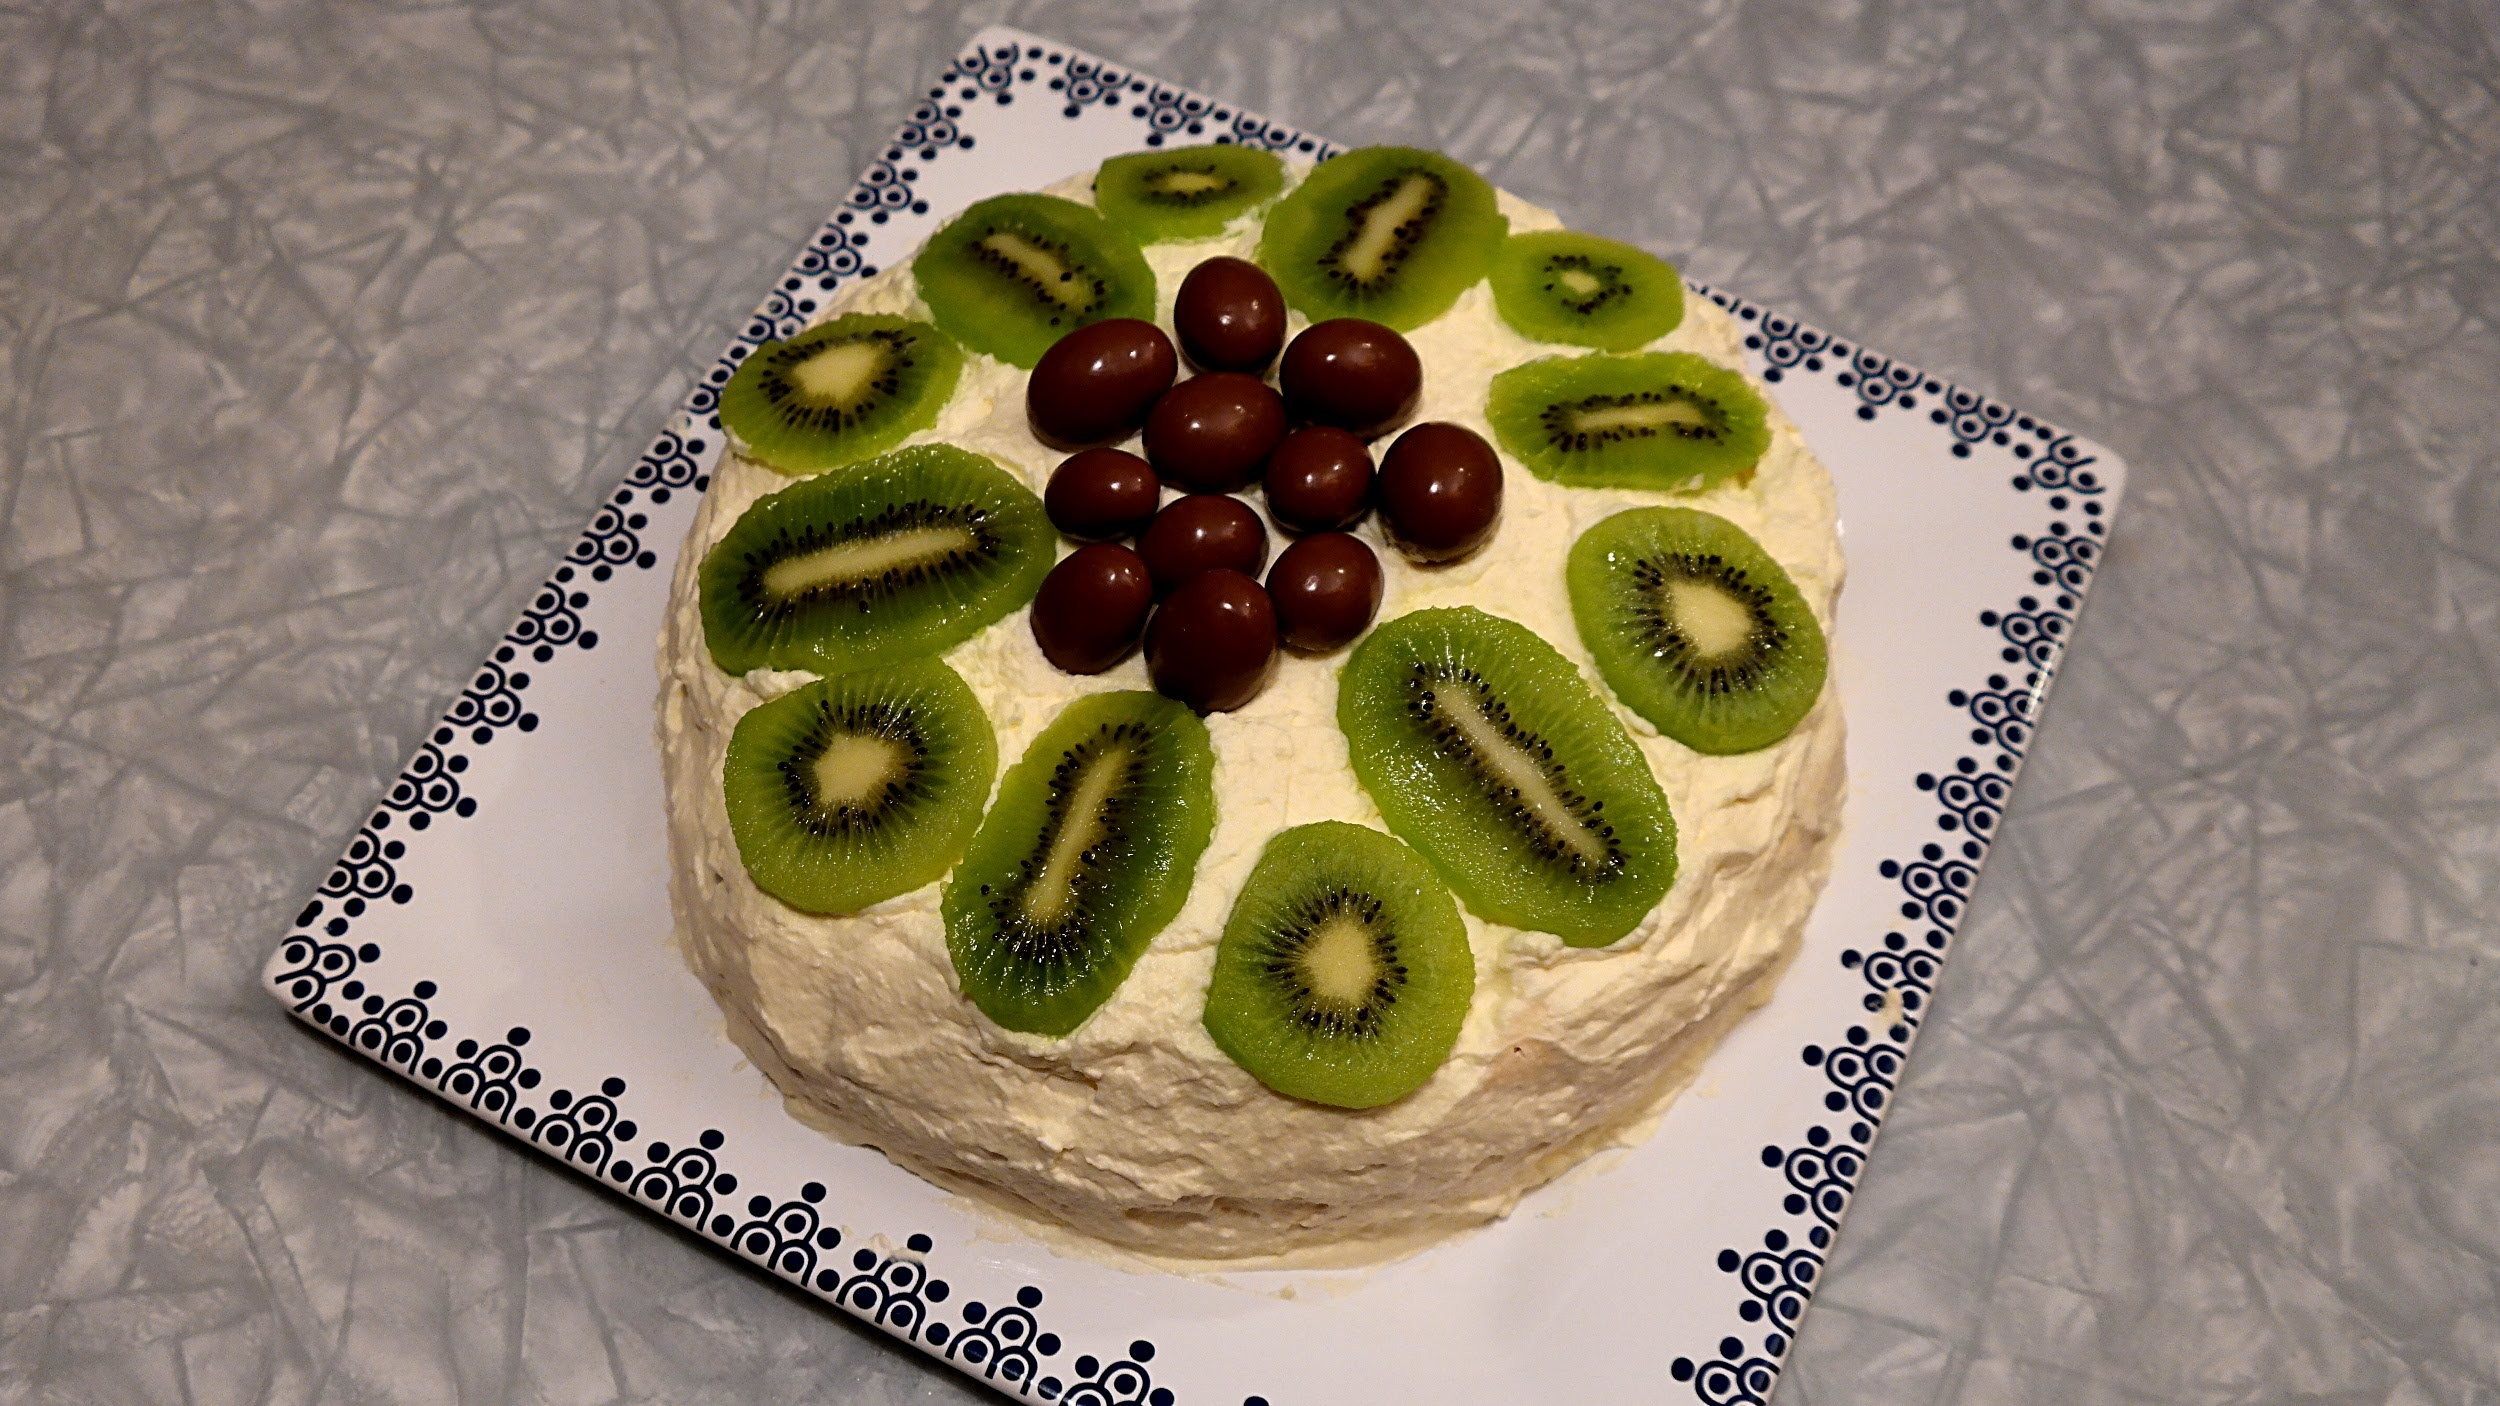 How to bake a Pavlova - Original Kiwi Cake - Backvideo aus Neuseeland